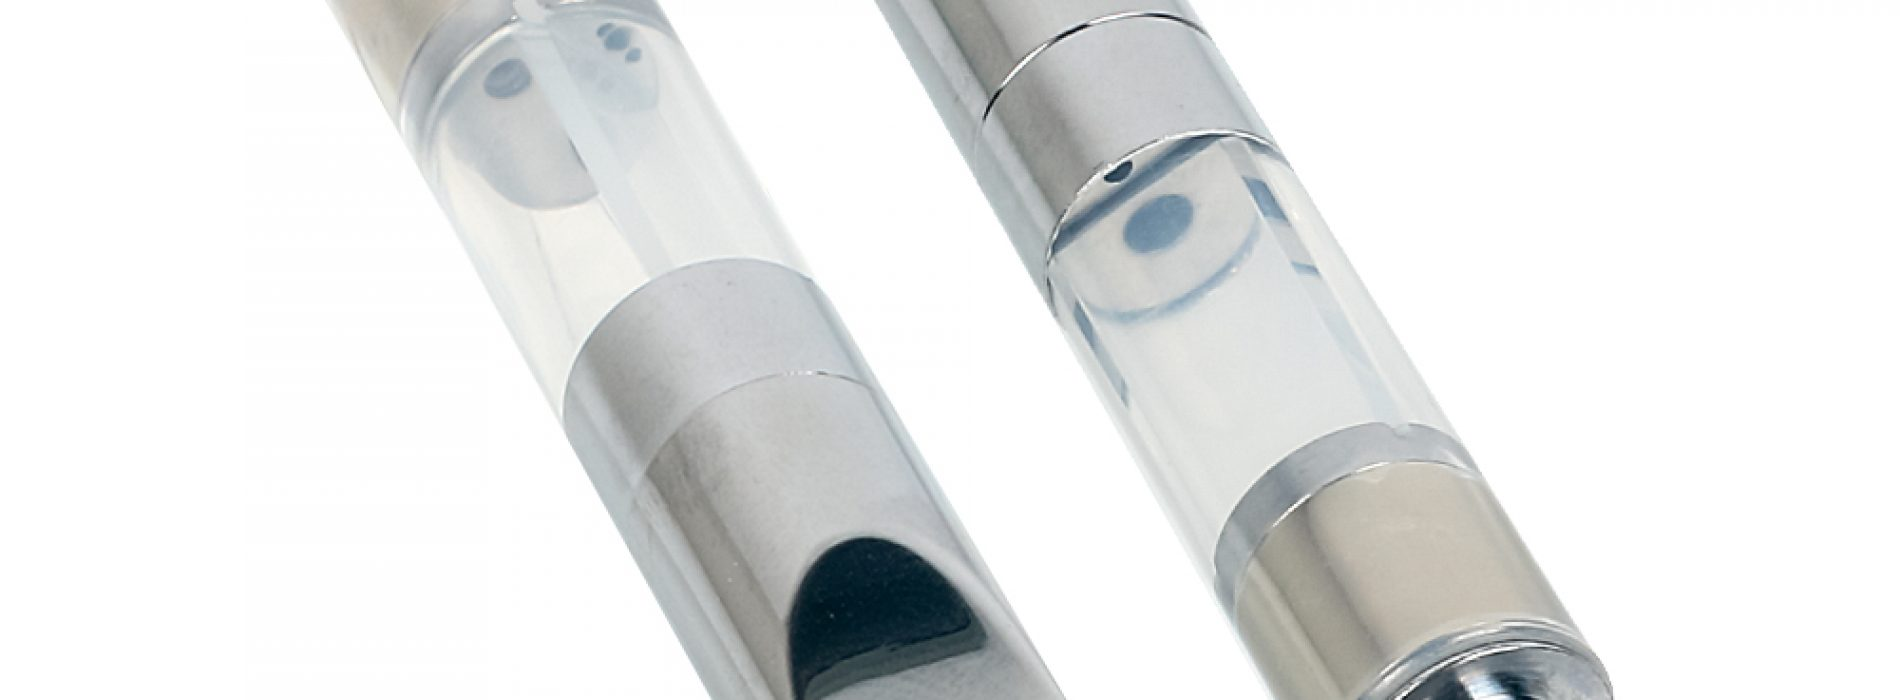 What is the entire working process of vape pens?